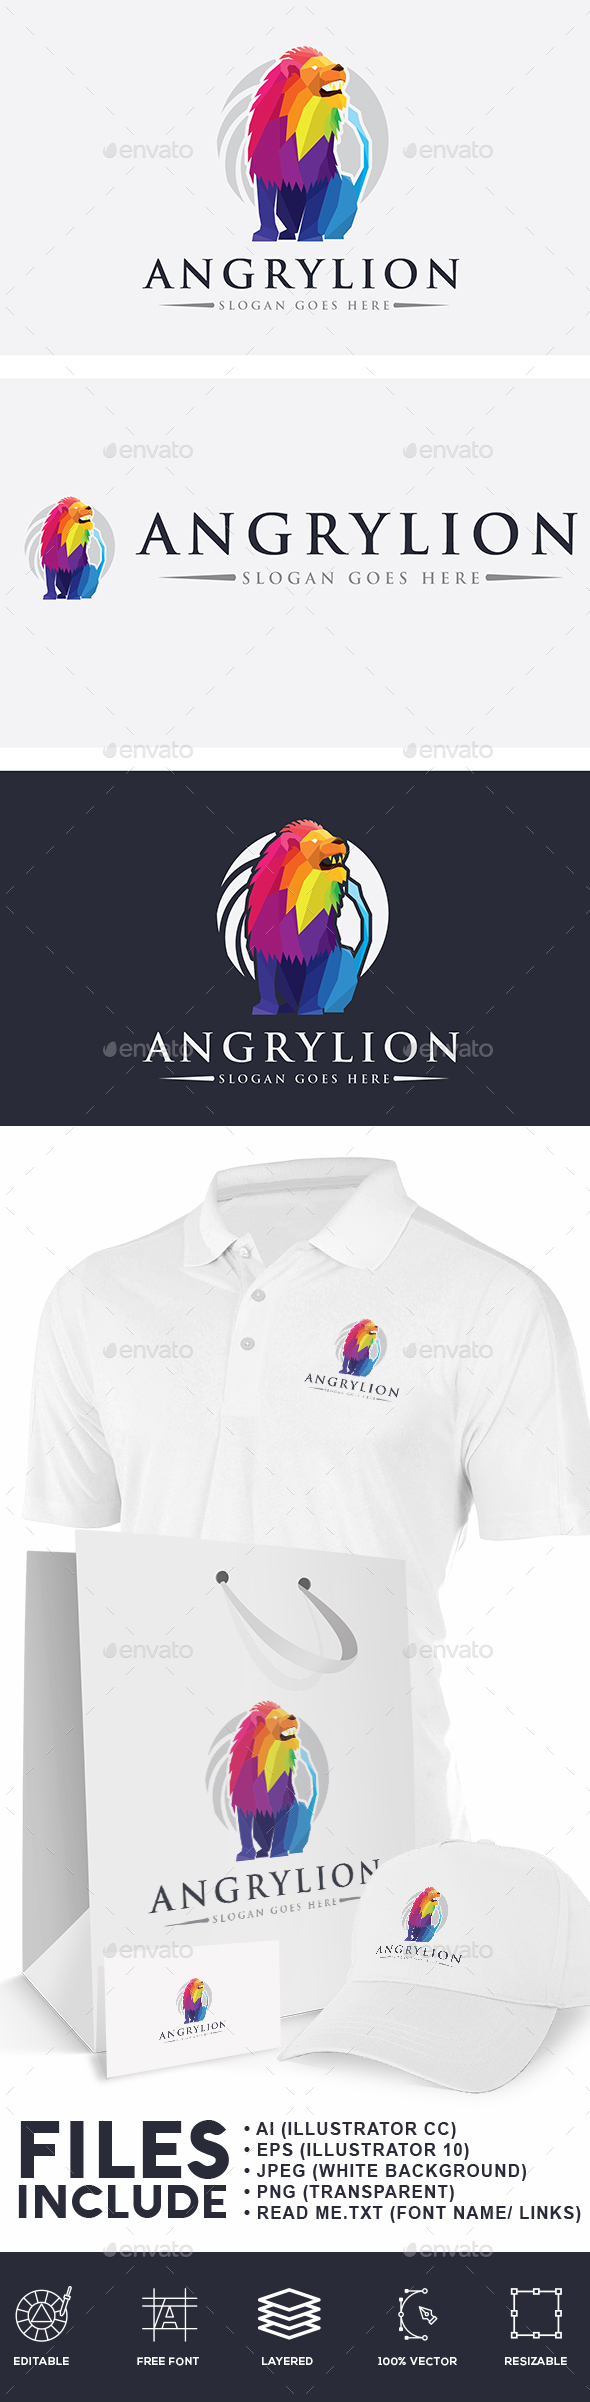 Angry Lion Logo - Animals Logo Templates